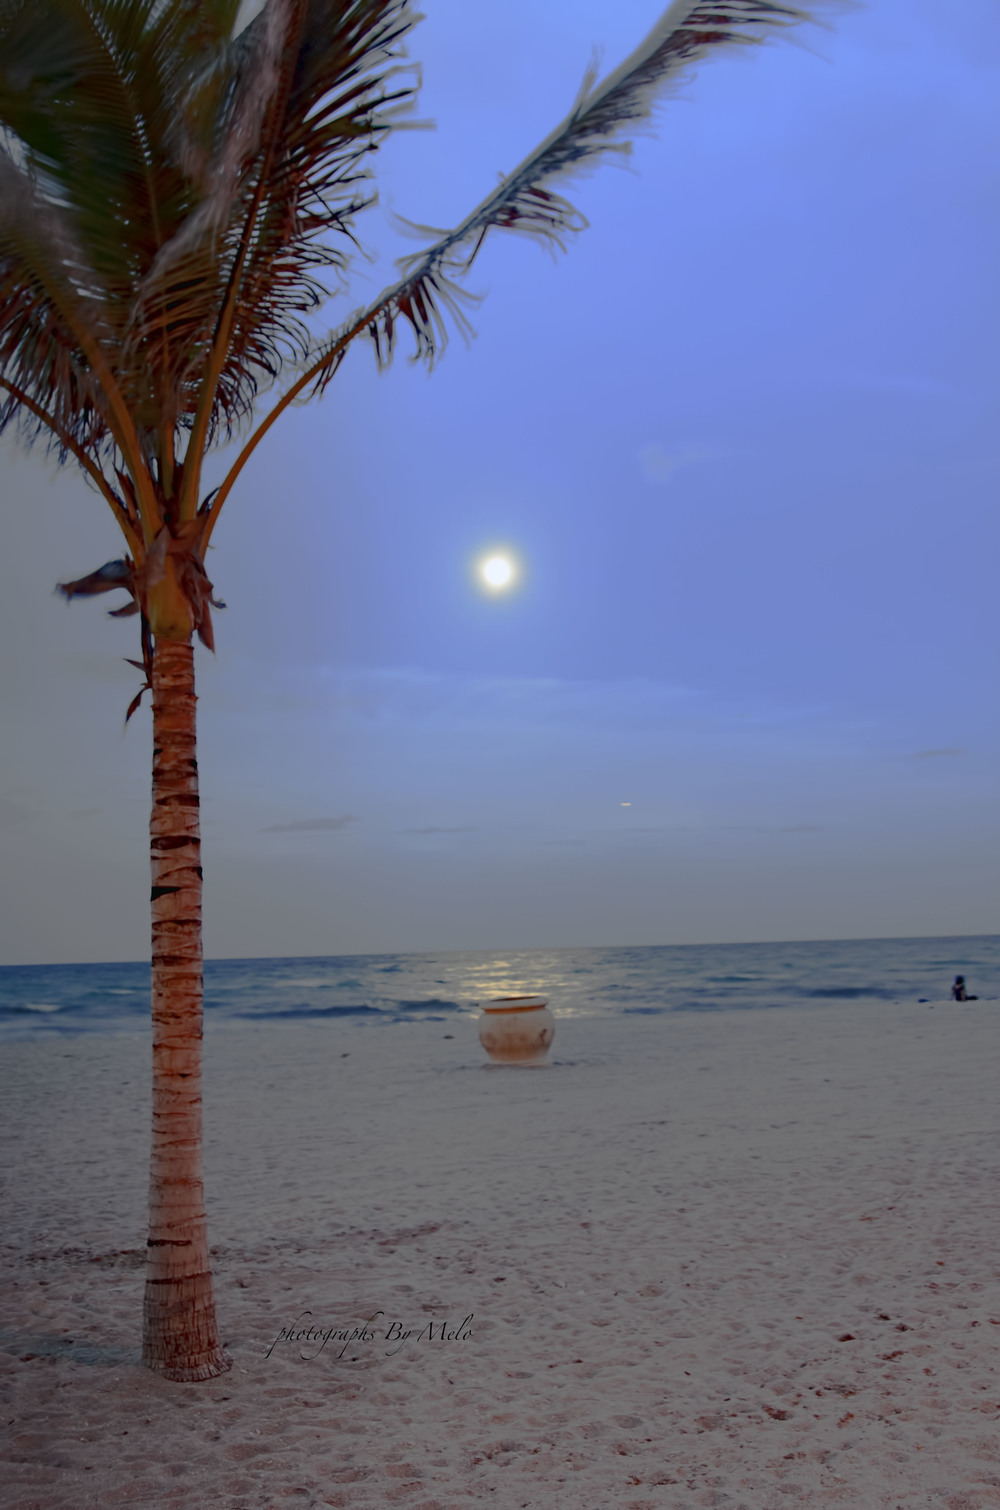 Full Moon, Hollywood Beach, Ft. Lauderdale